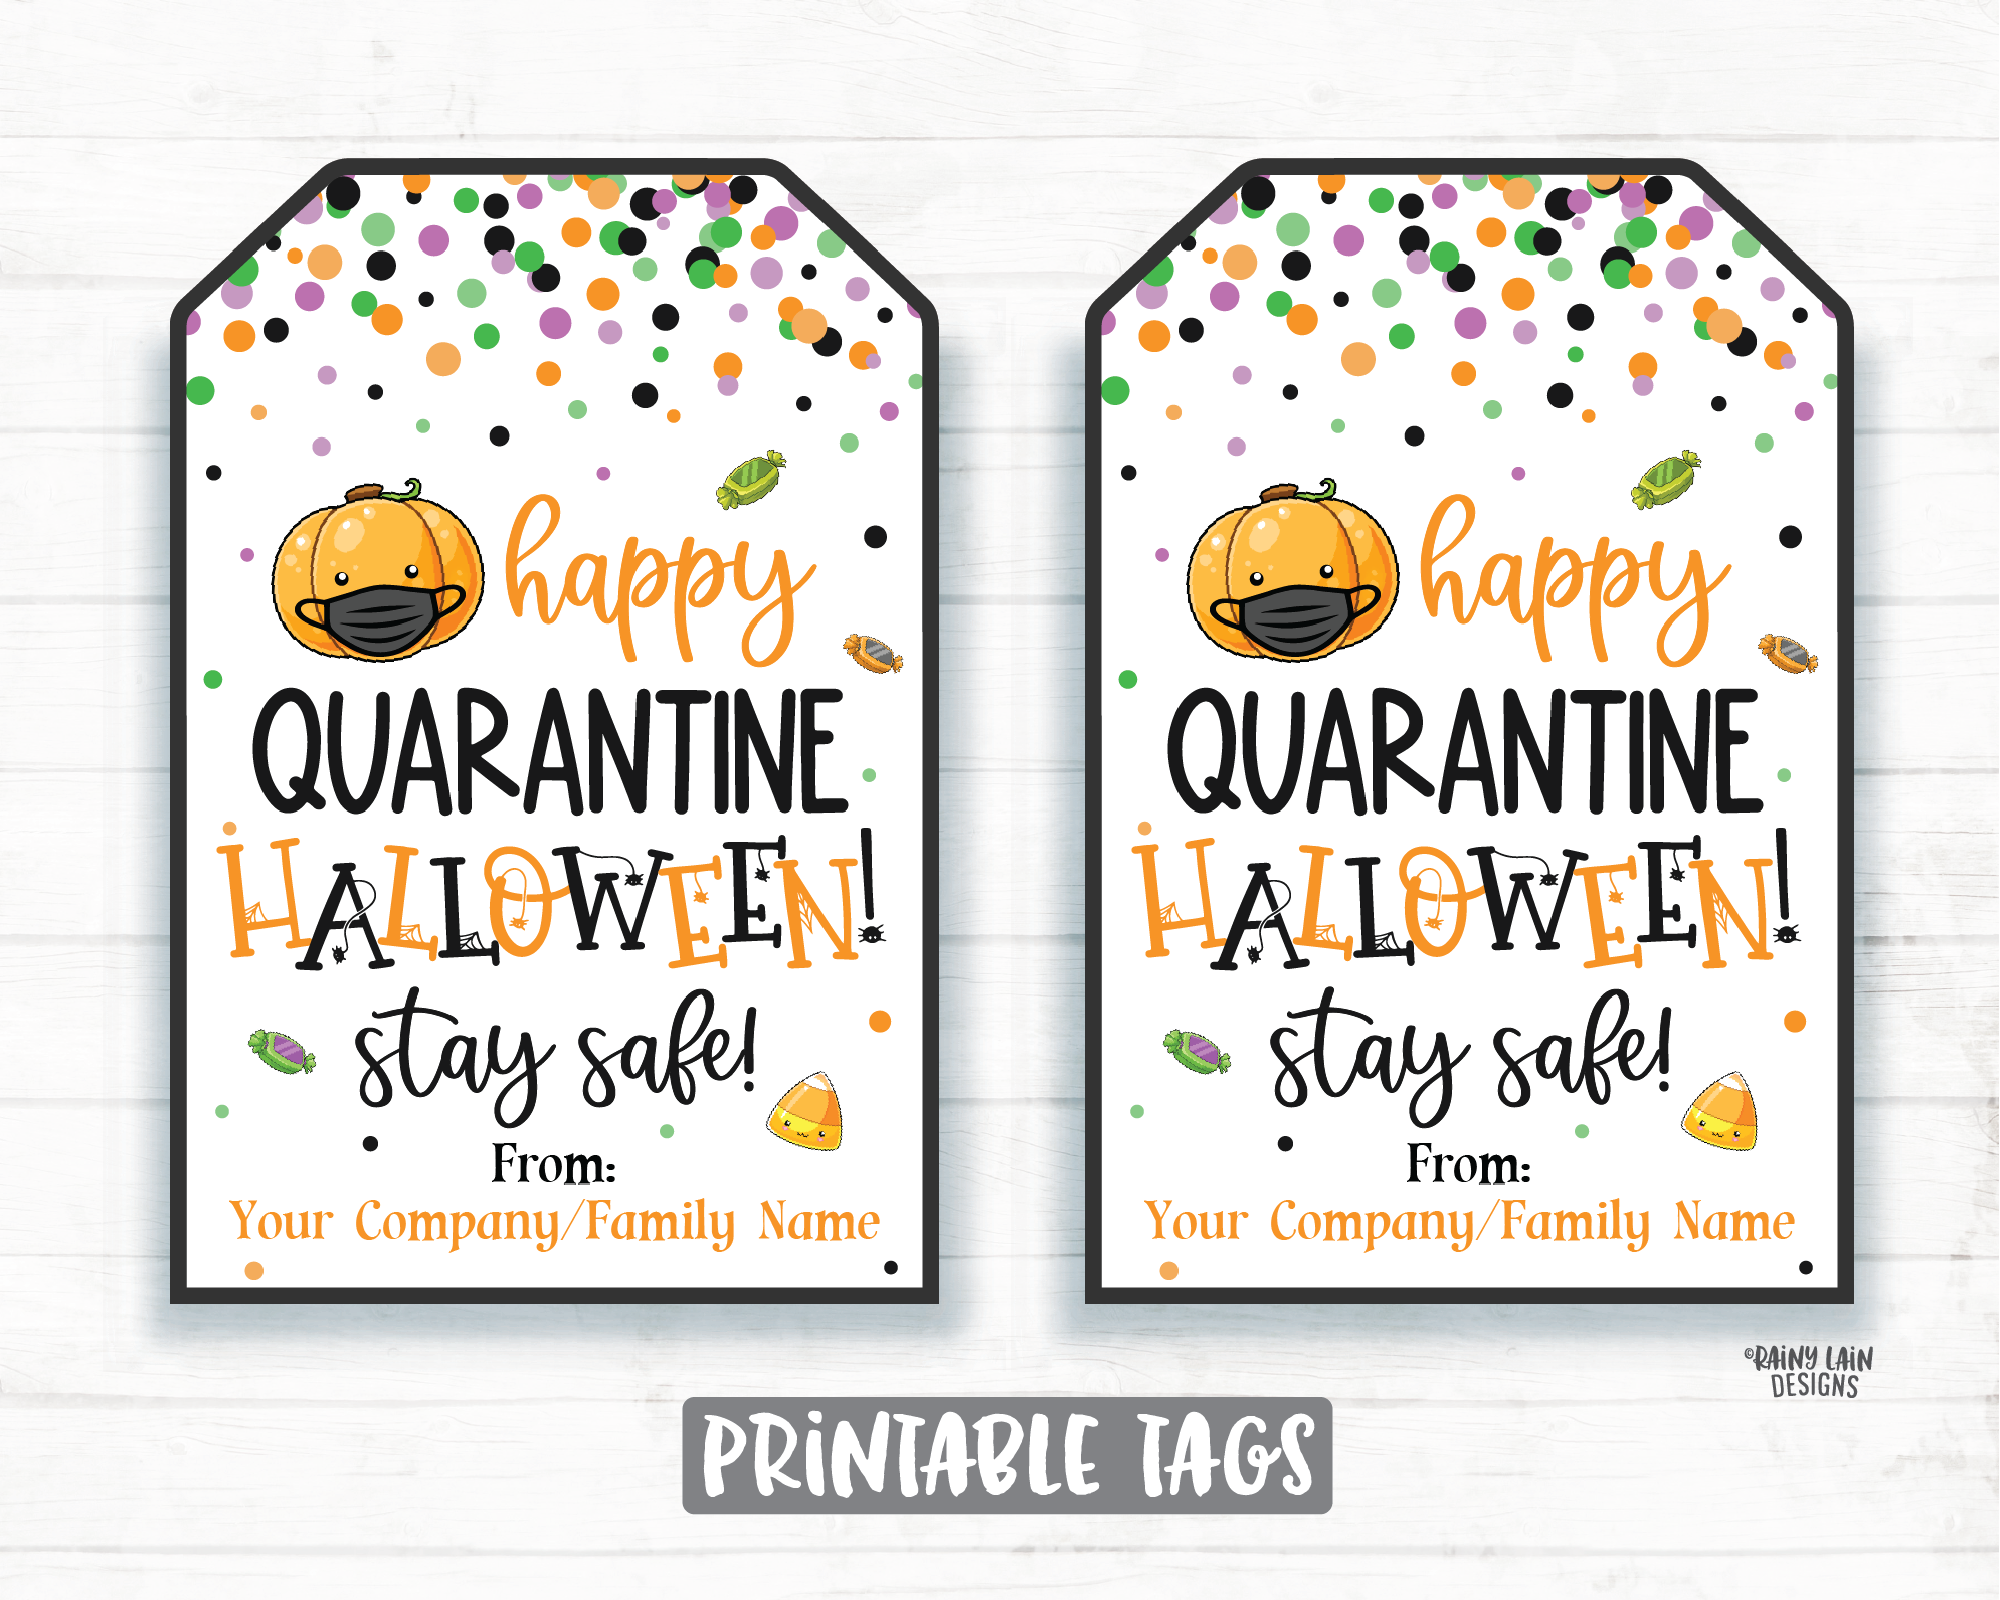 Happy Quarantine Halloween Tags Printable Halloween Editable Halloween Favor Tags Halloween Mask Tags 2020 Social Distancing Pandemic